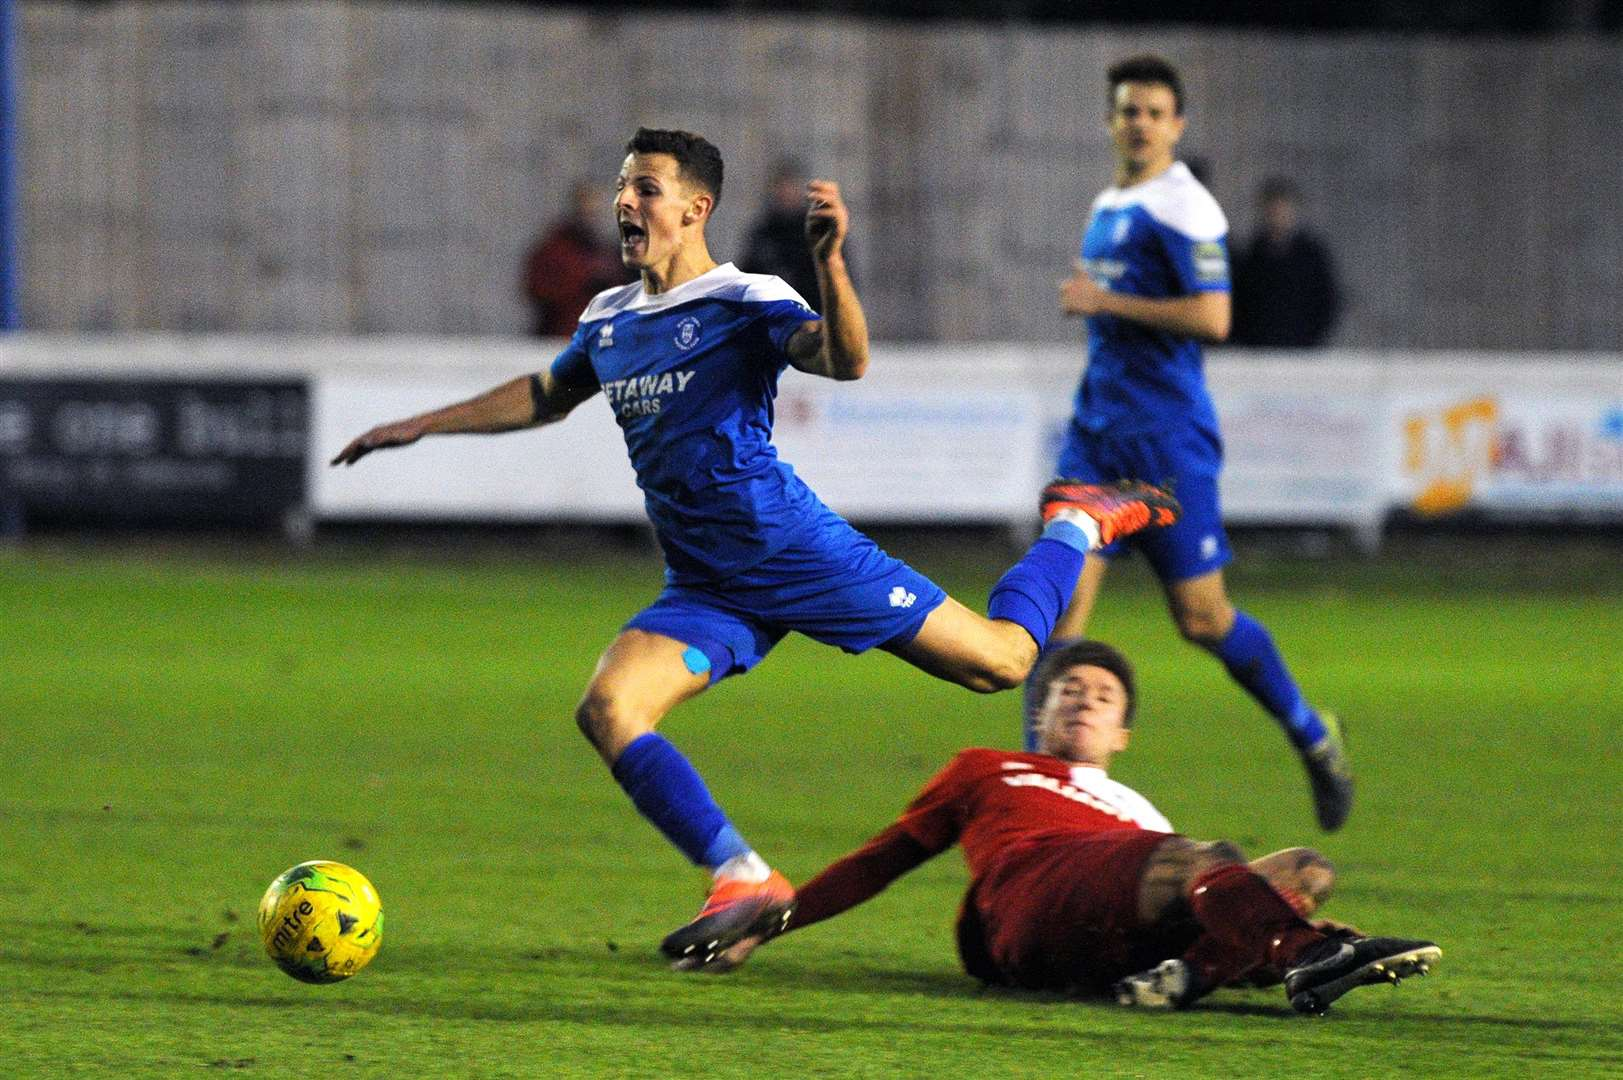 FOOTBALL - Bury Town v Aveley..Pictured: Ryan Jolland gets fouled....PICTURE: Mecha Morton... .. (5187108)